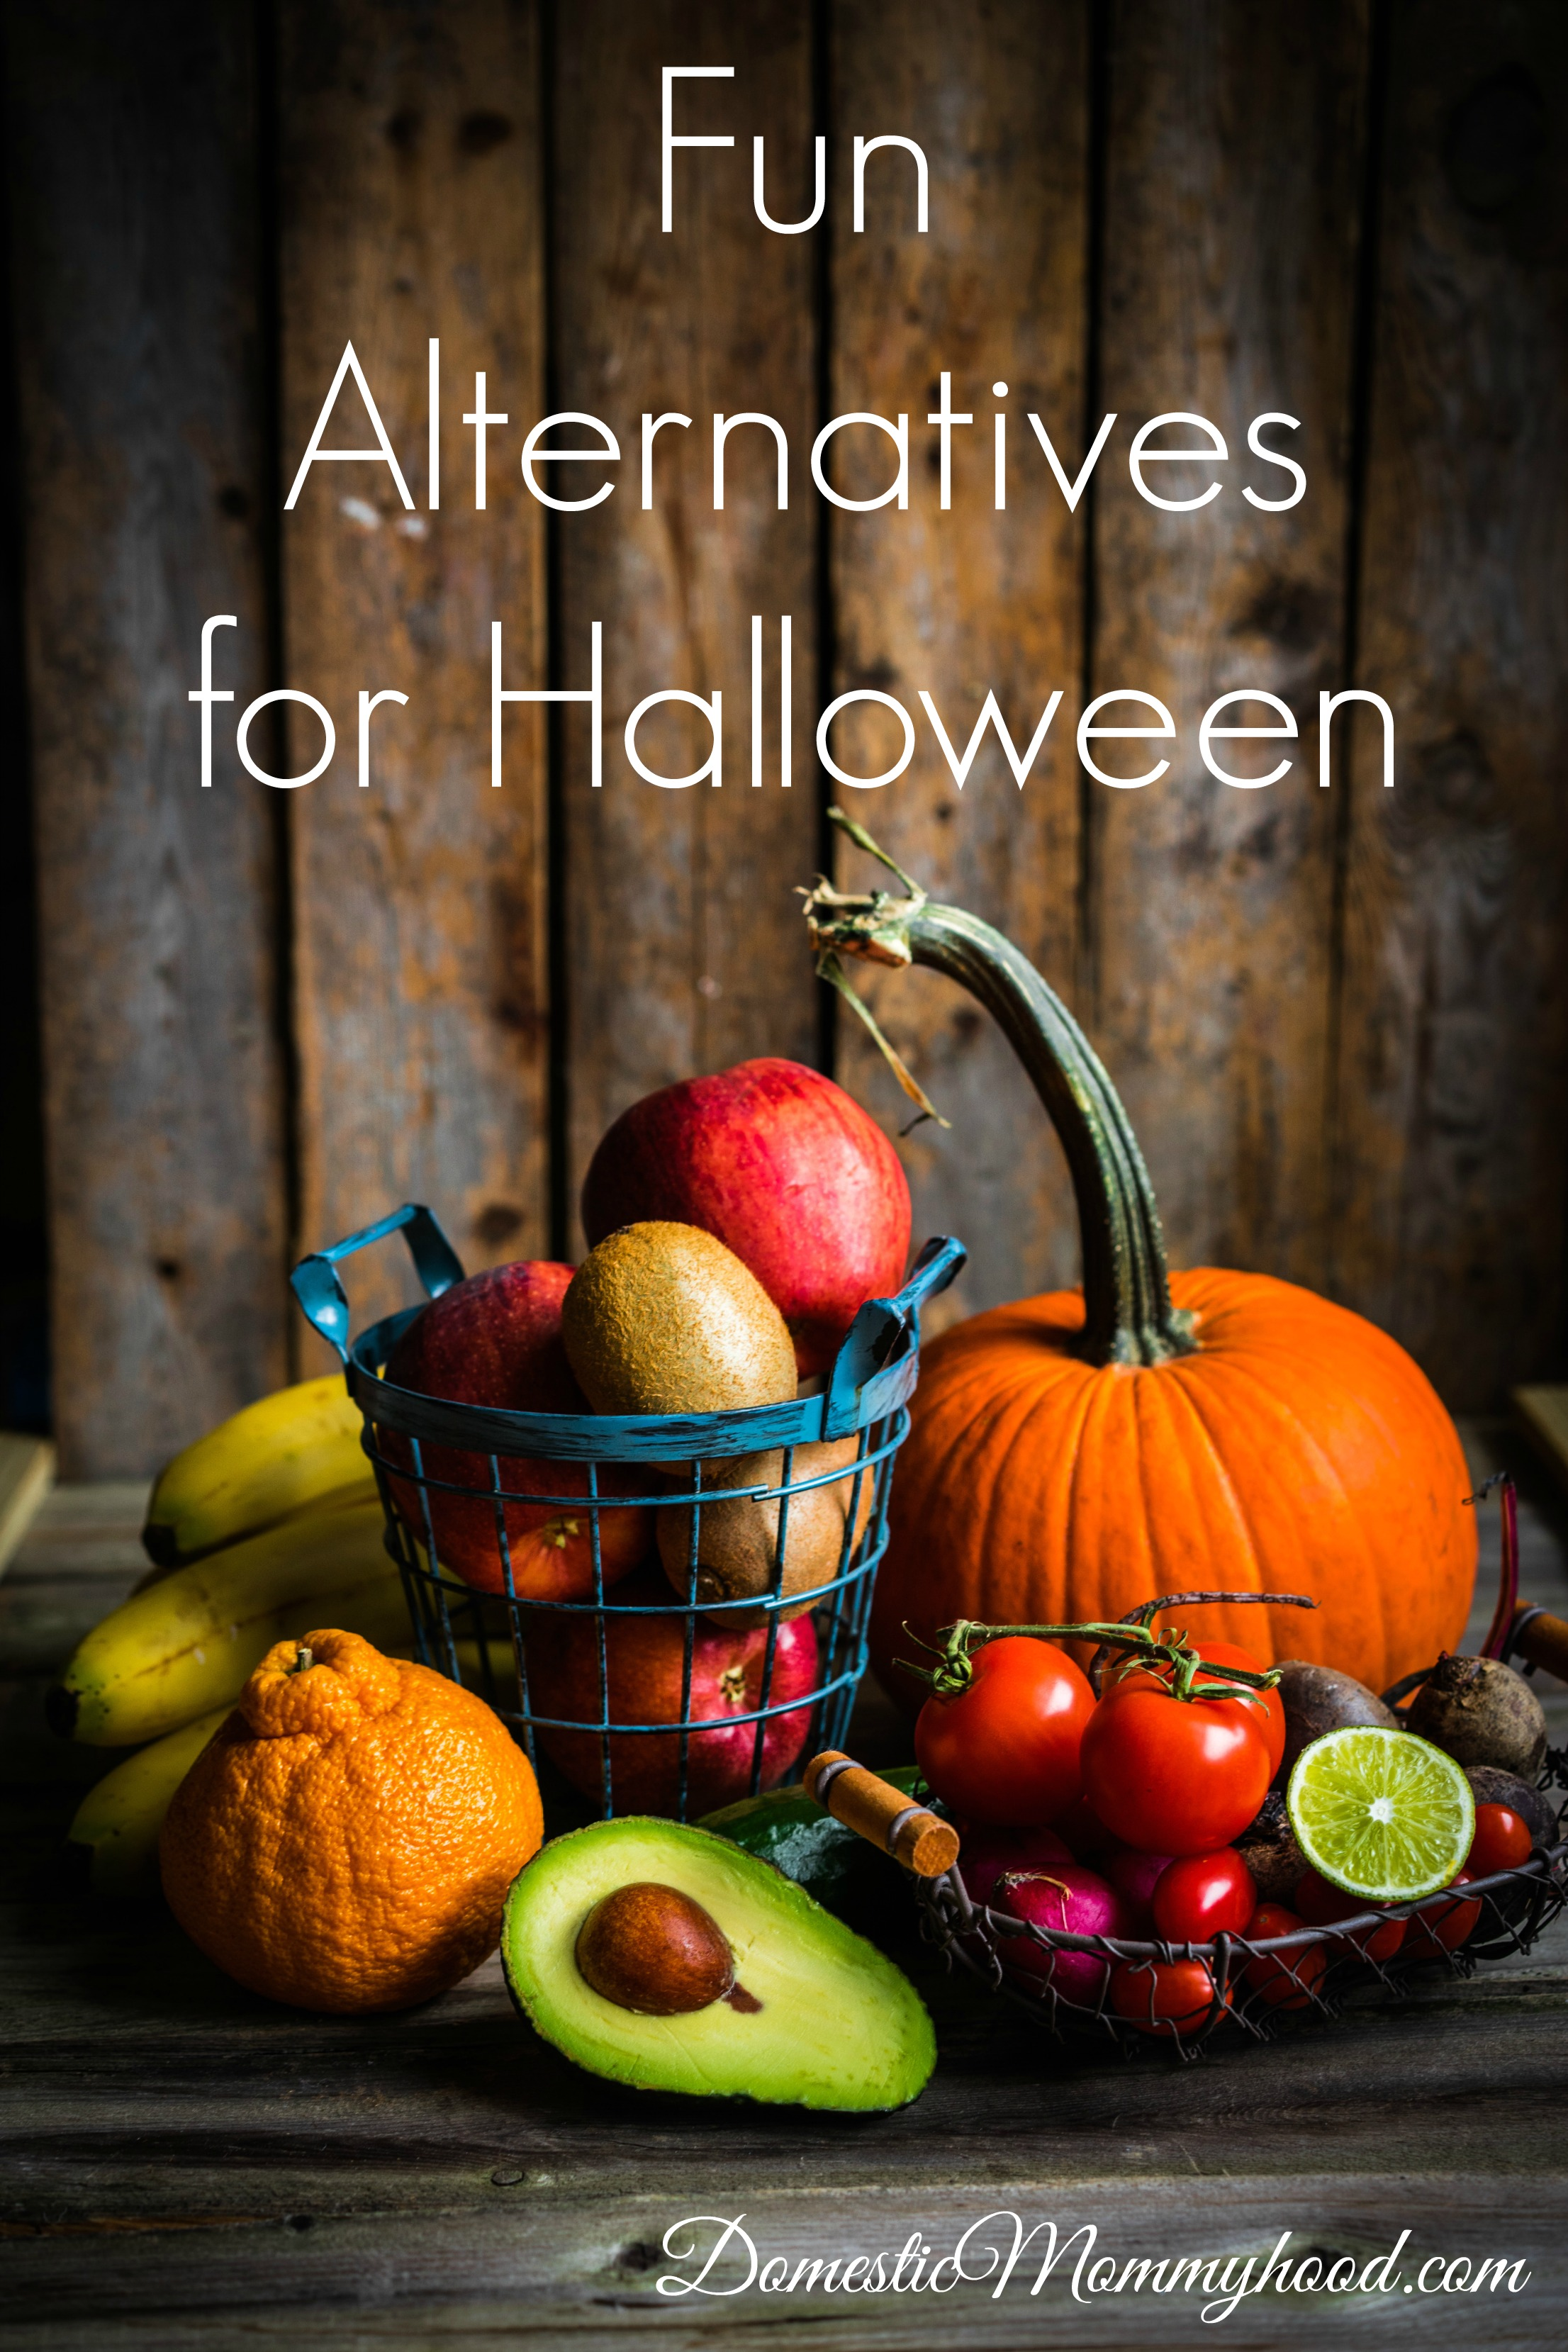 Fun Alternatives for Halloween